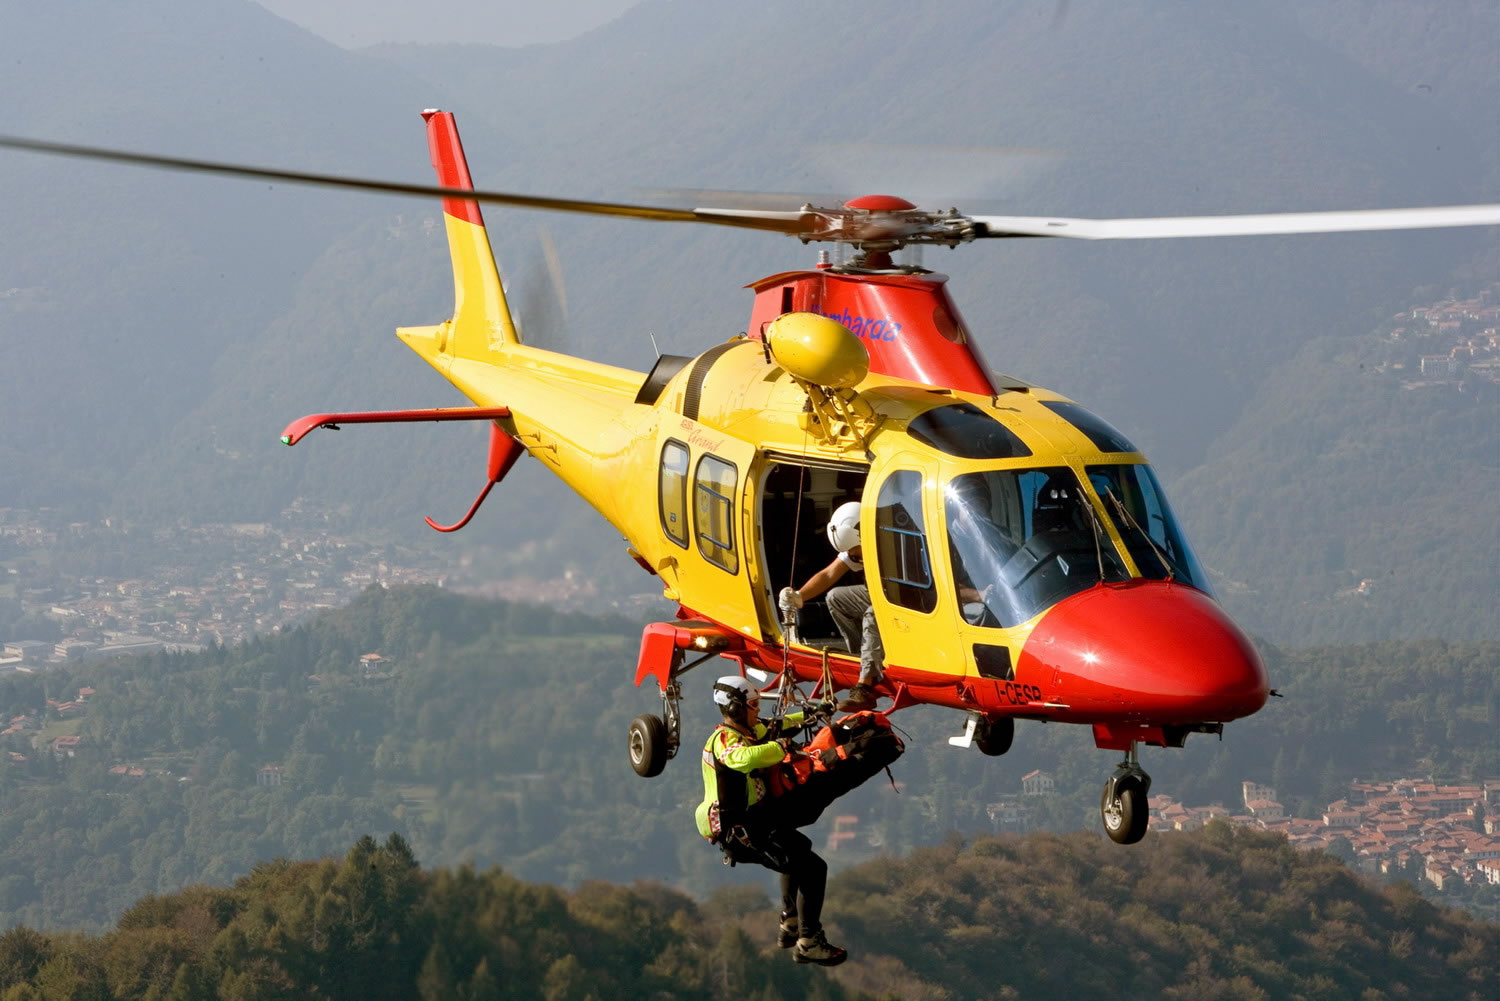 Gallery: Civil Aircraft: Helicopters - Aircraft ...